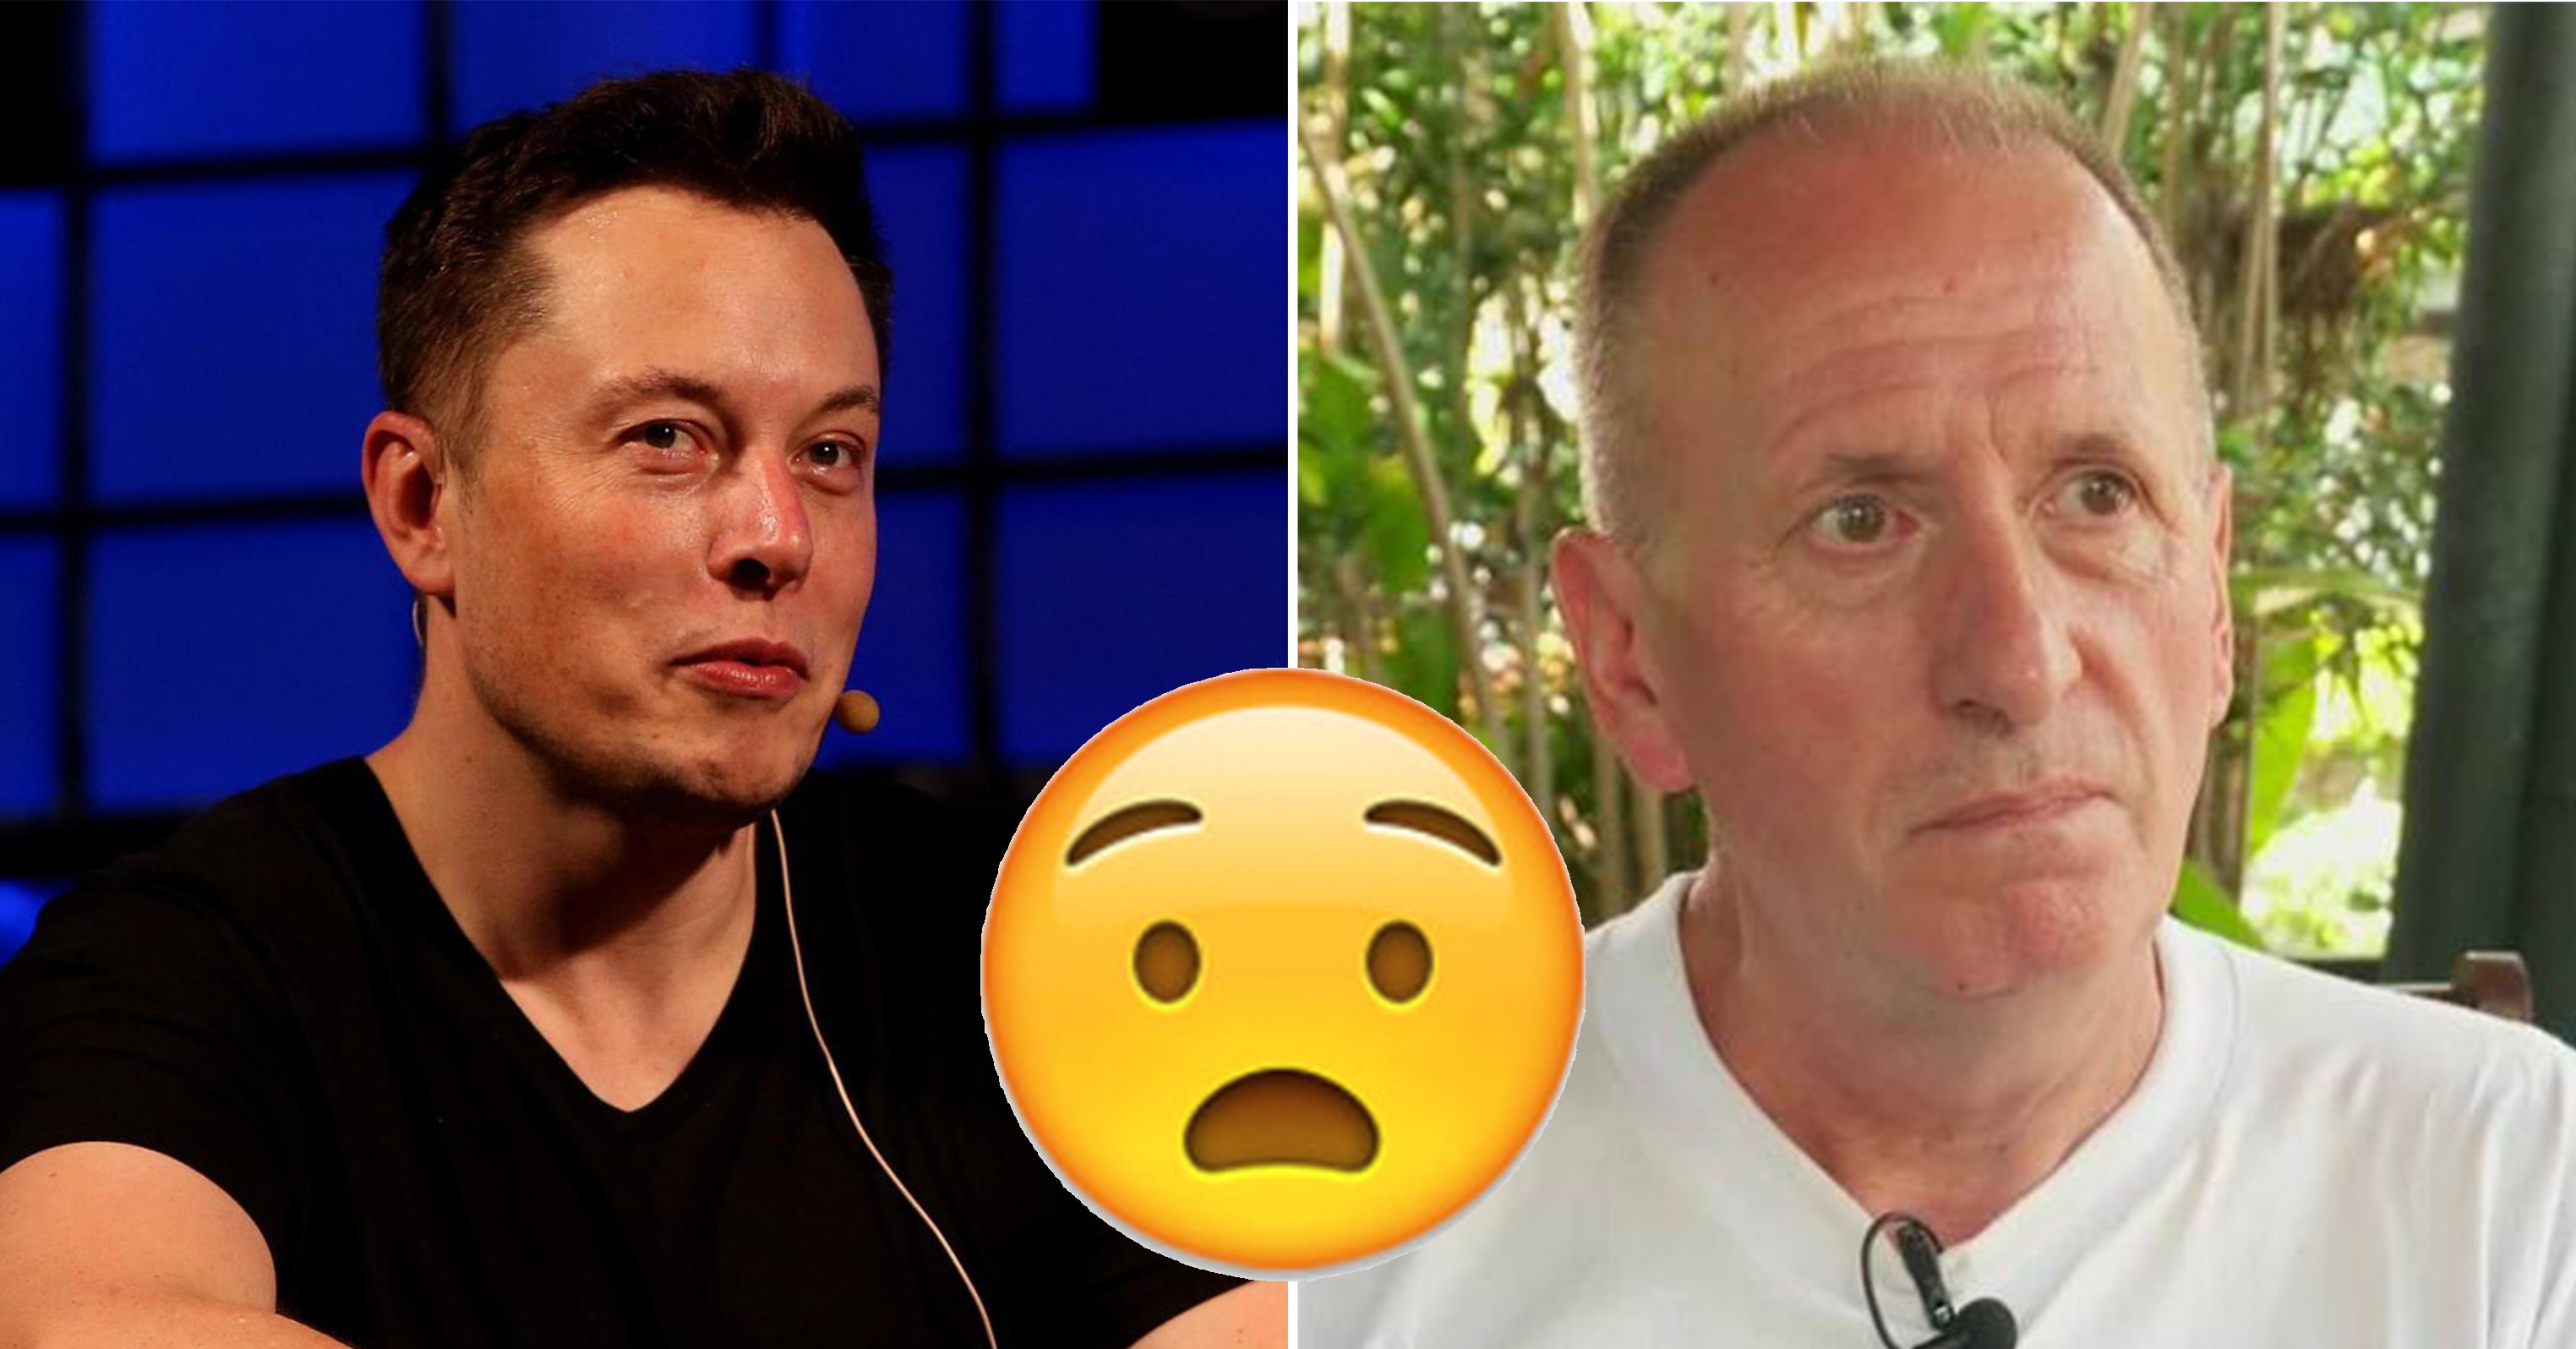 British Cave Diver Vernon Unsworth Considering Legal Action Against Billionaire Elon Musk